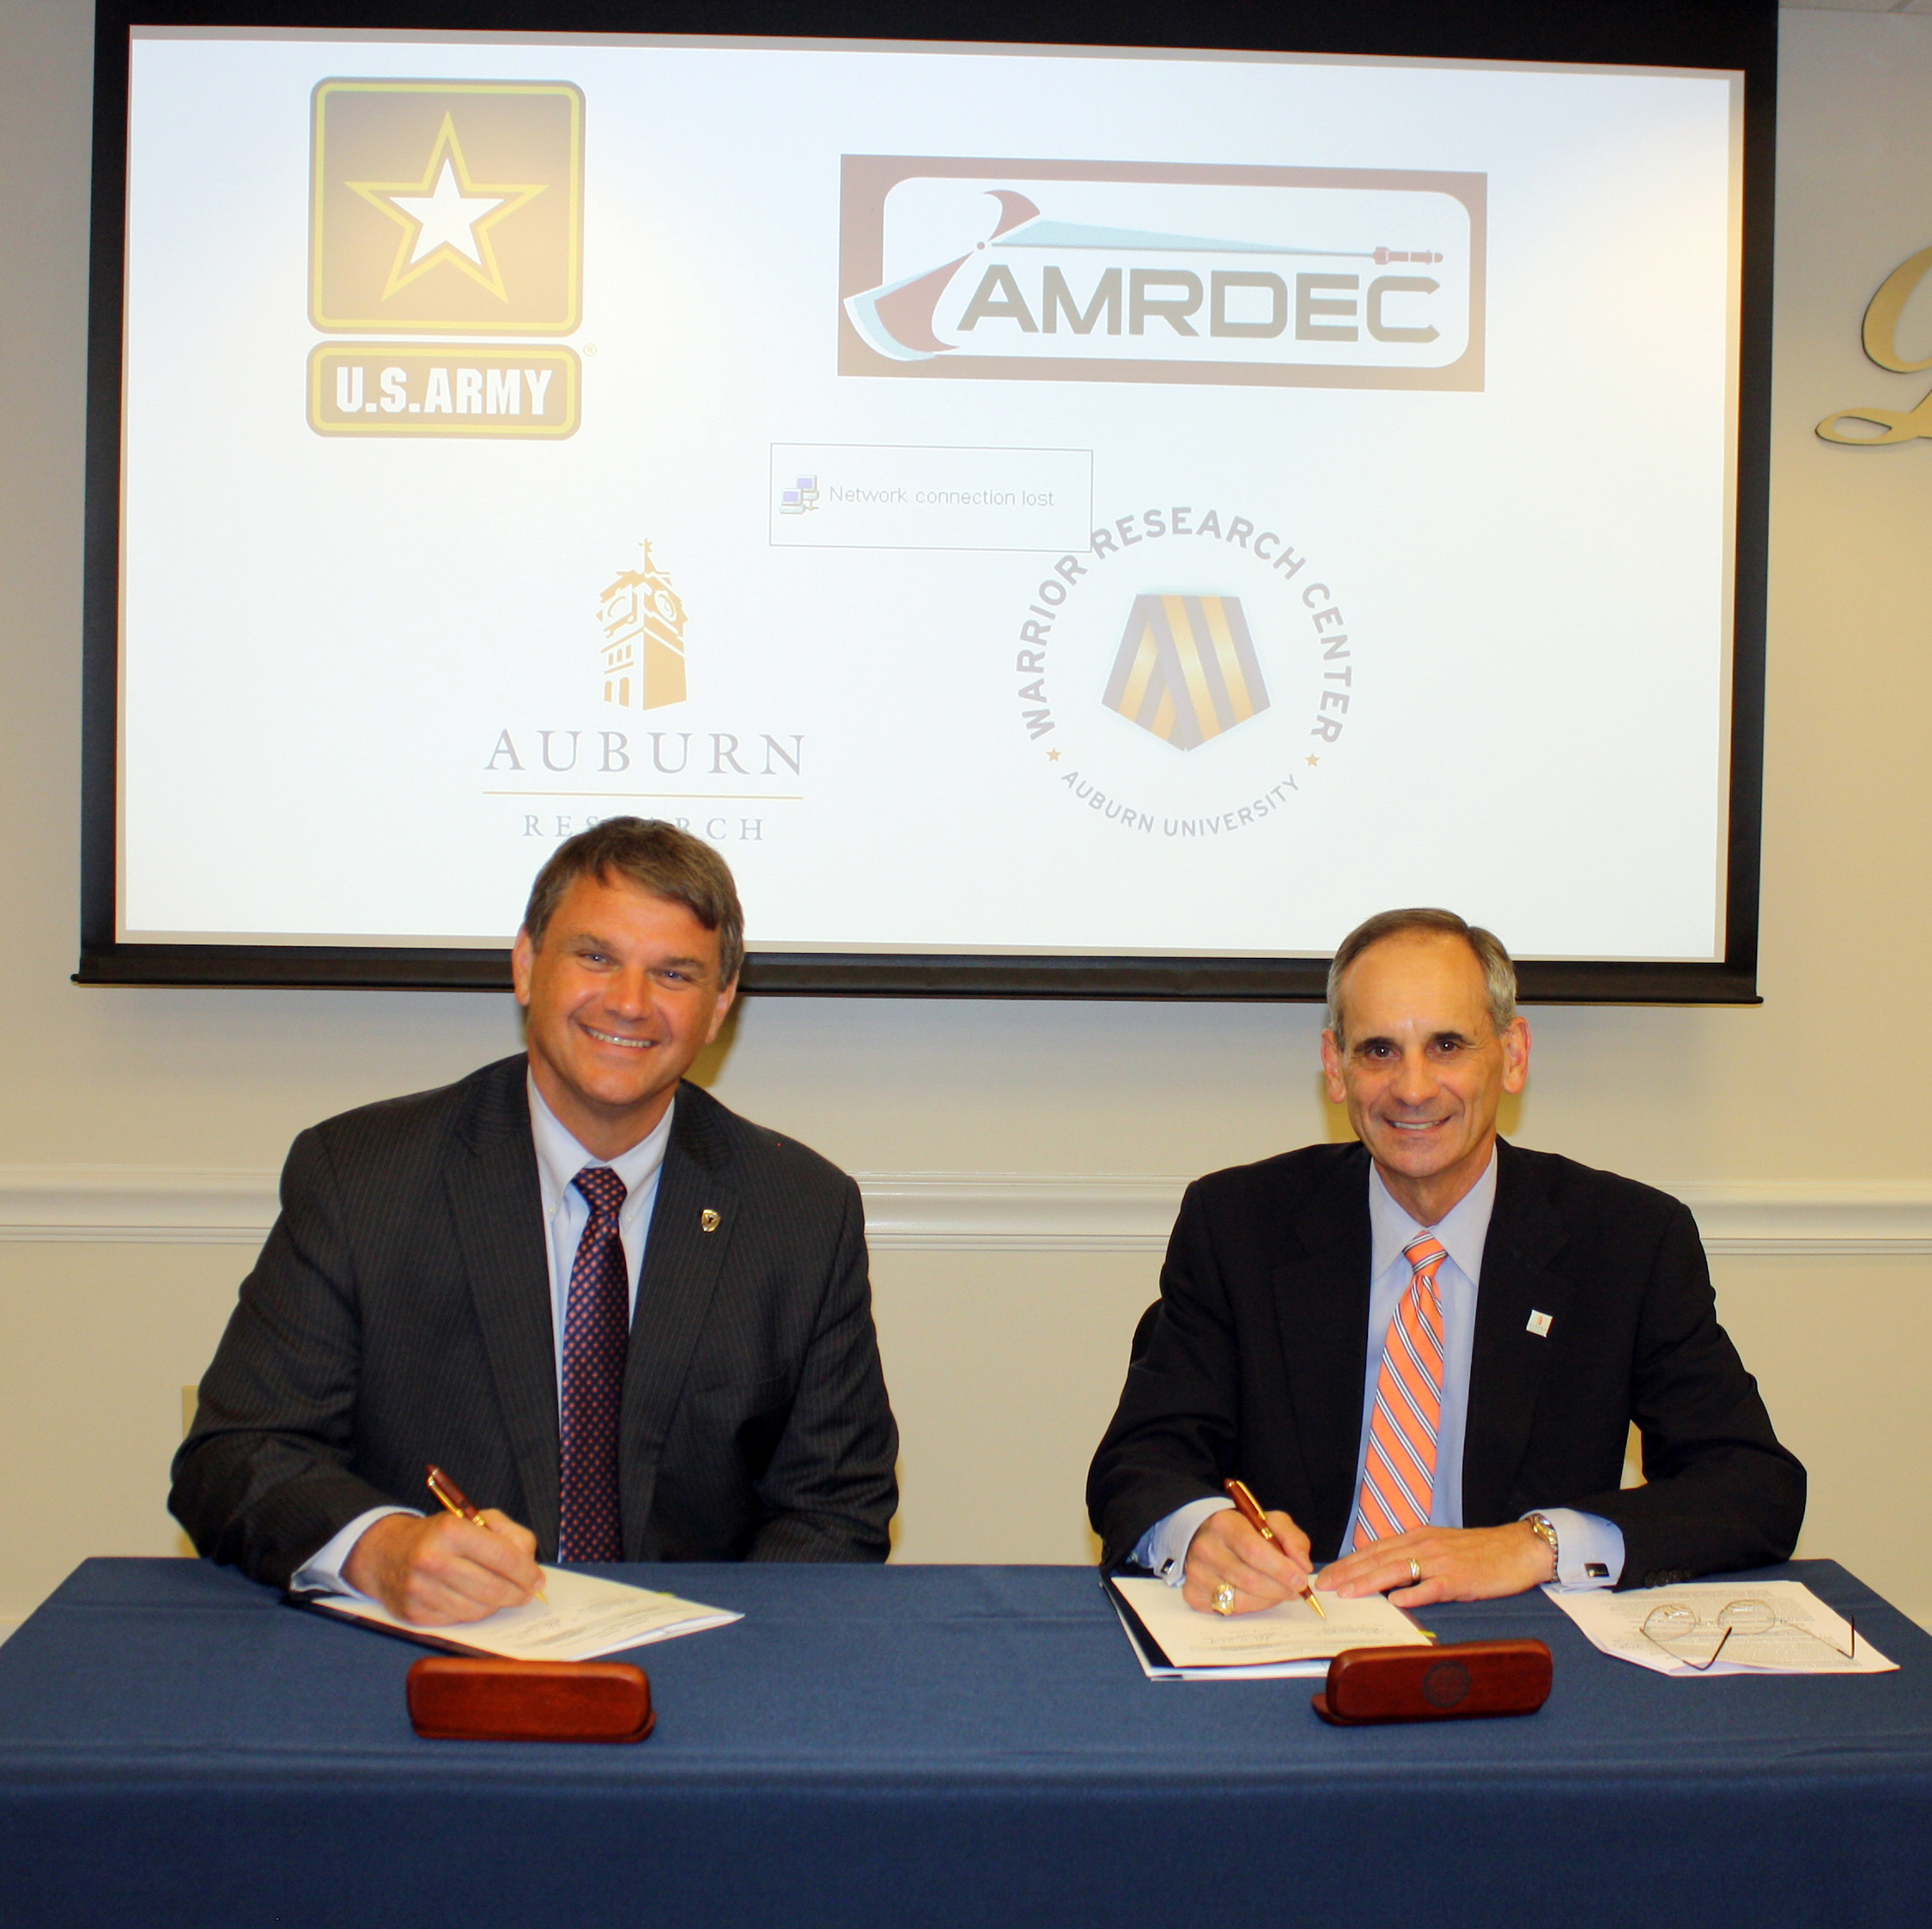 Jeff Langhout, left, acting technical director of the U.S. Army's Aviation and Missile Research, Development and Engineering Center, signs a cooperative research and development agreement with John Mason, Auburn's vice president for research and economic development.